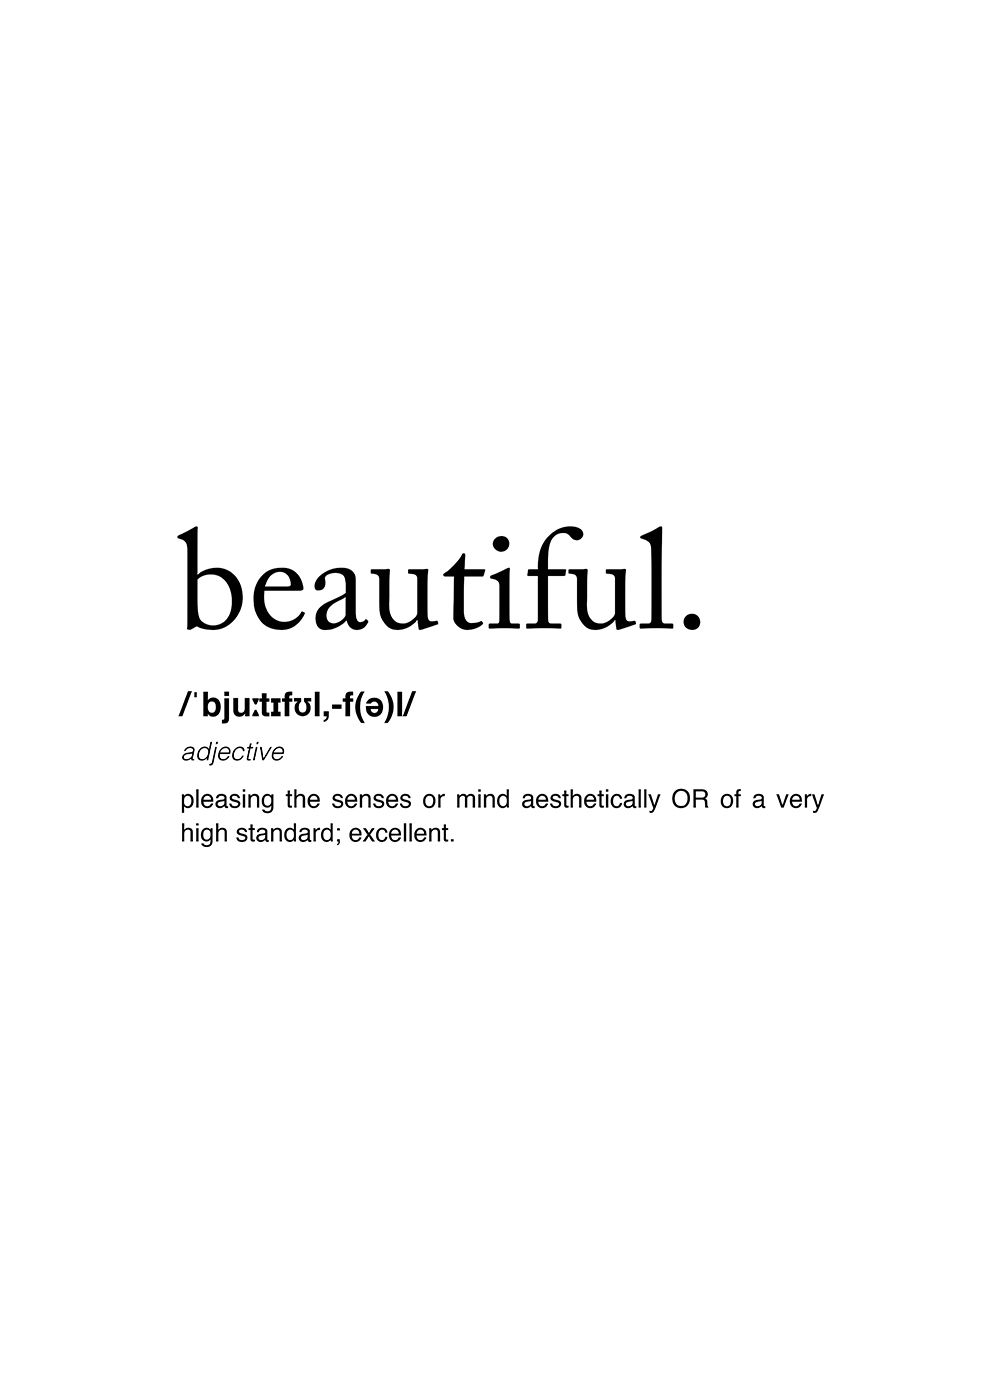 Poster - Definition Of Beautiful